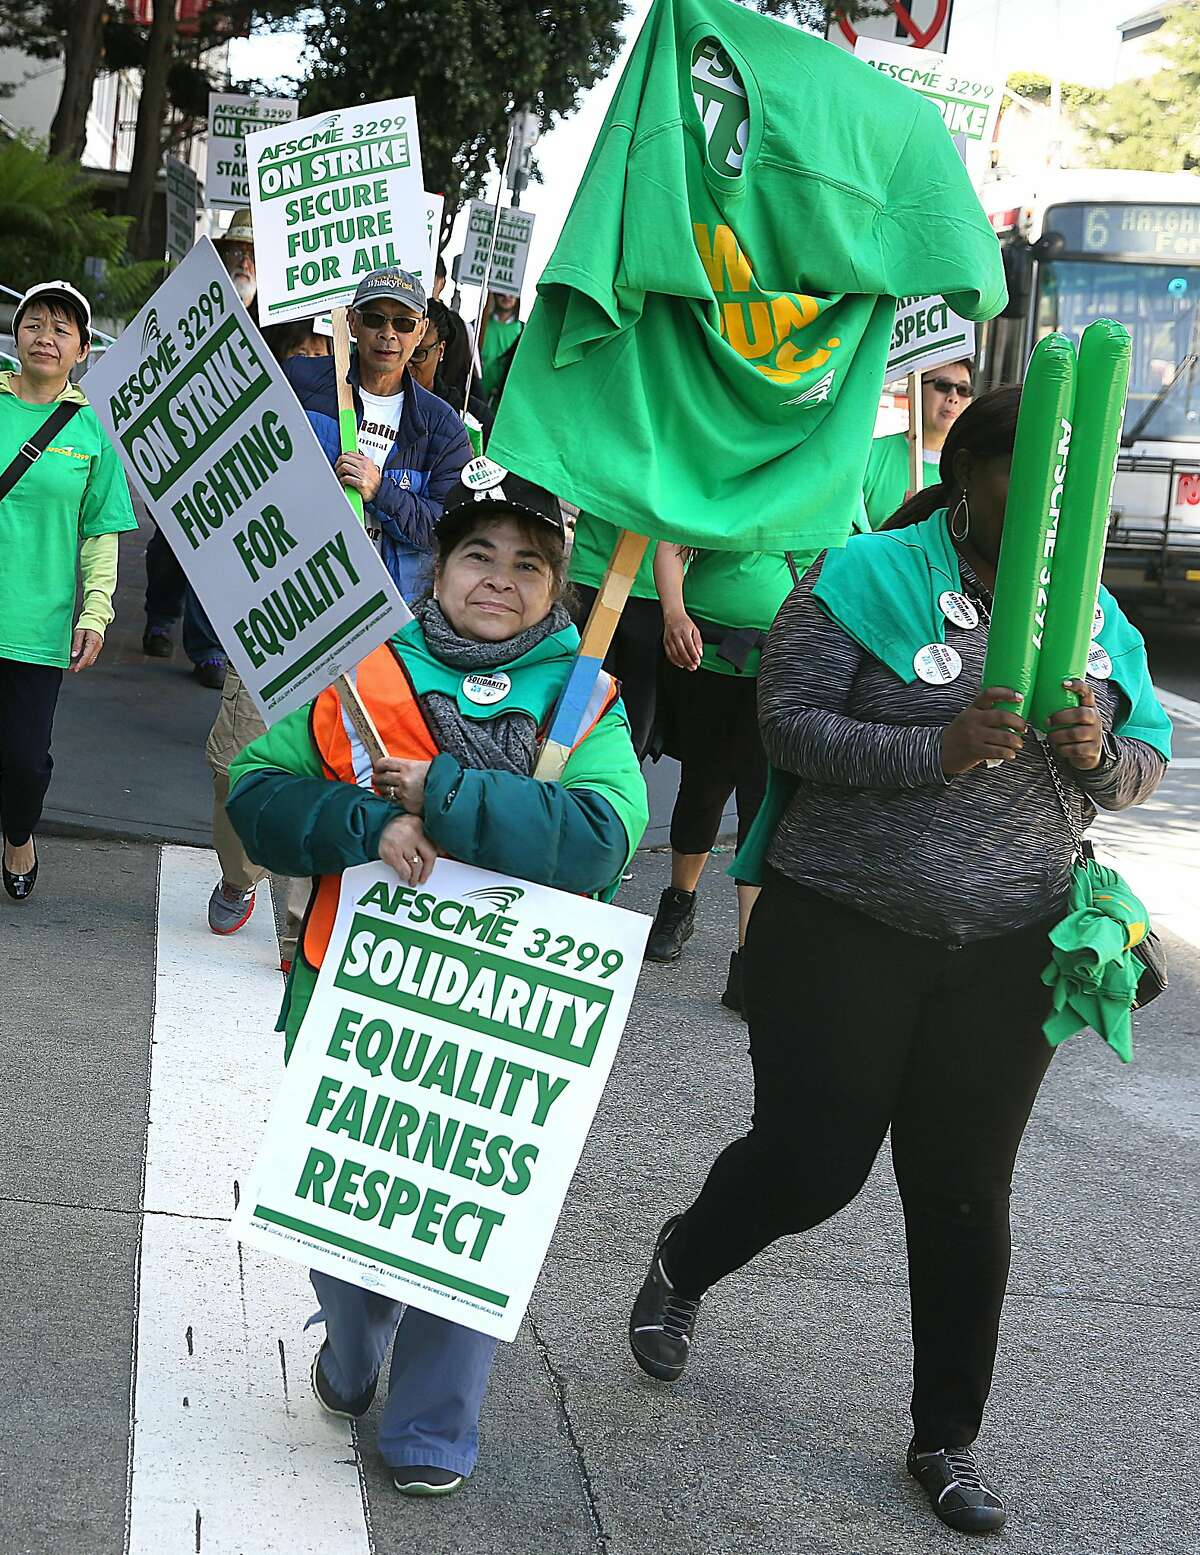 Patient care health care worker Maria Luna protests at UCSF Medical Center on Parnassus Ave. to increase salaries and address racial and gender pay inequalities Monday, May 7, 2018 in San Francisco.